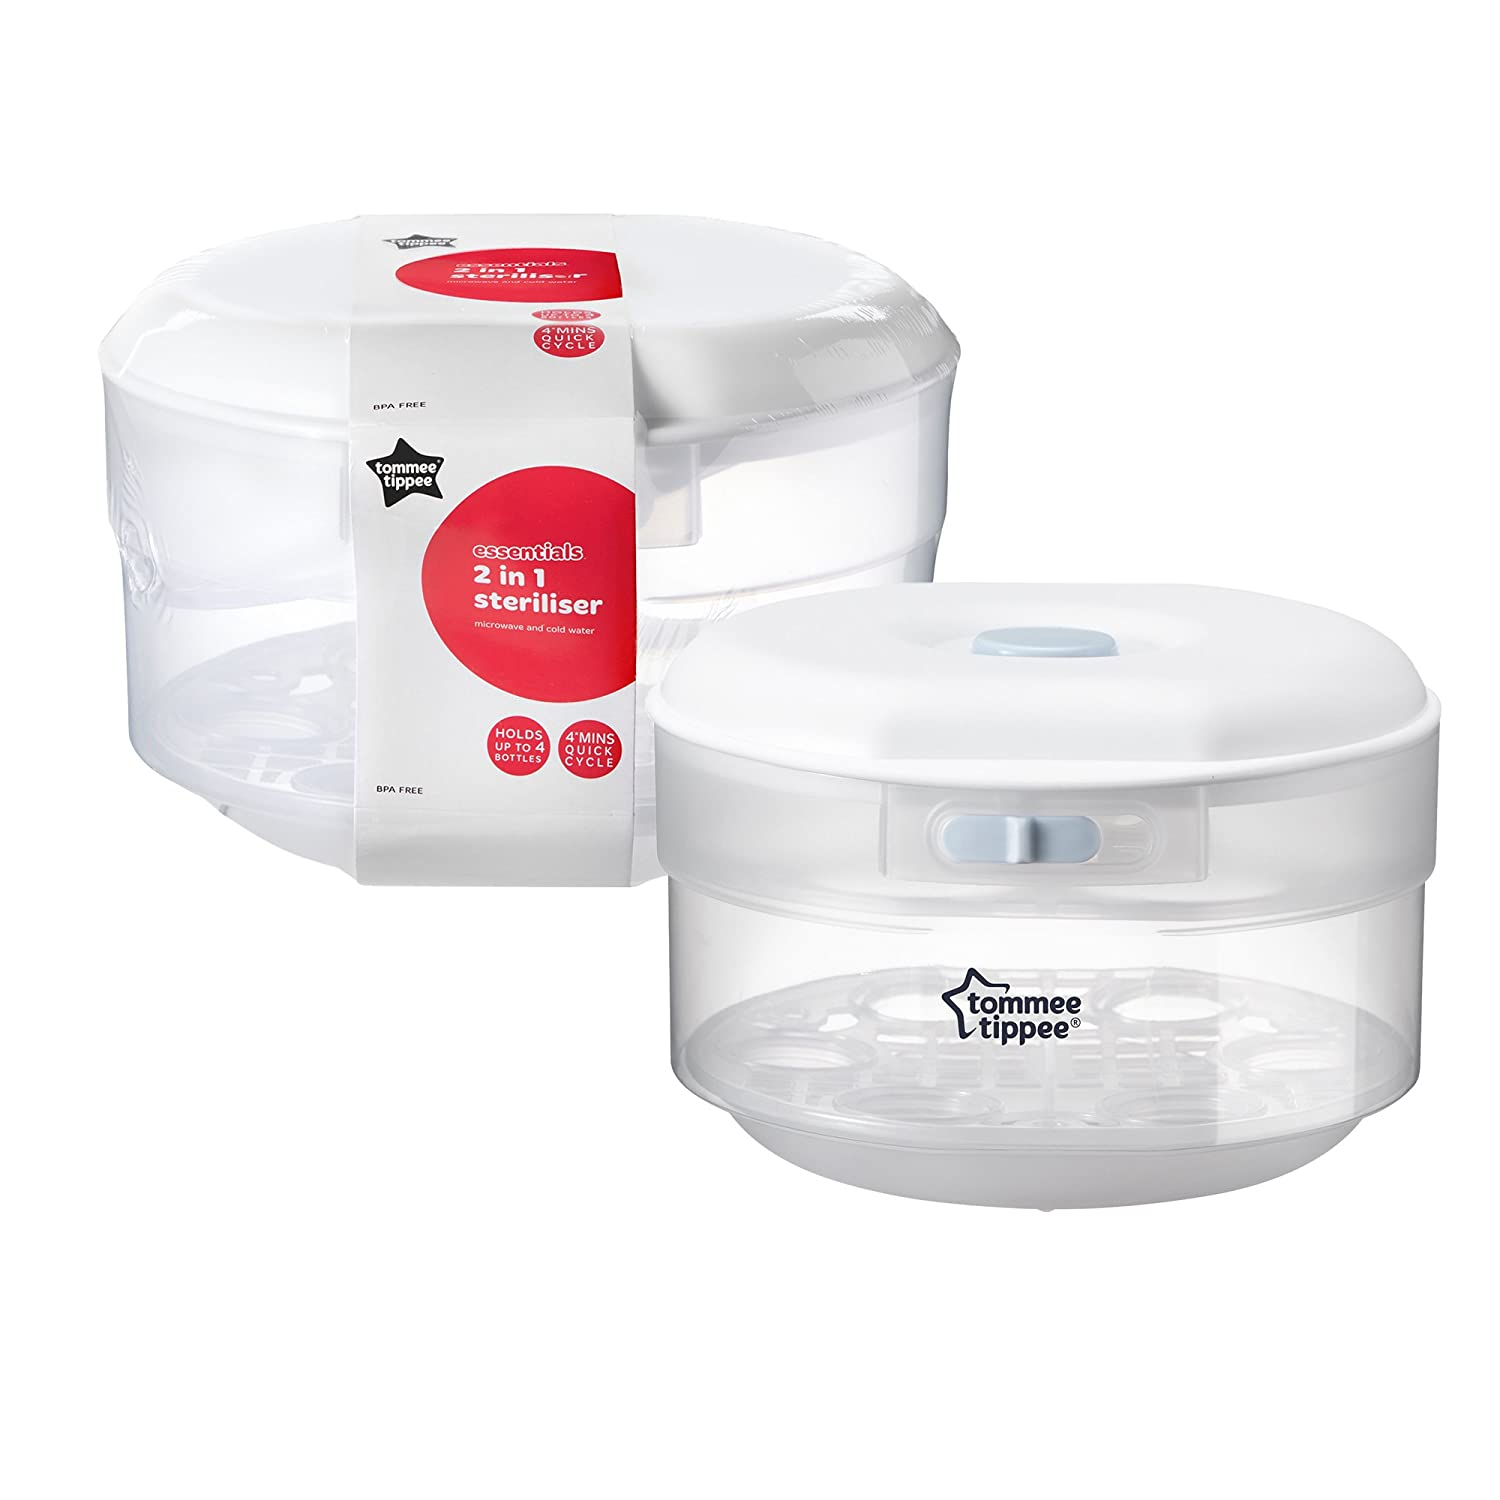 Tommee Tippee Microwave and Cold Water Steriliser